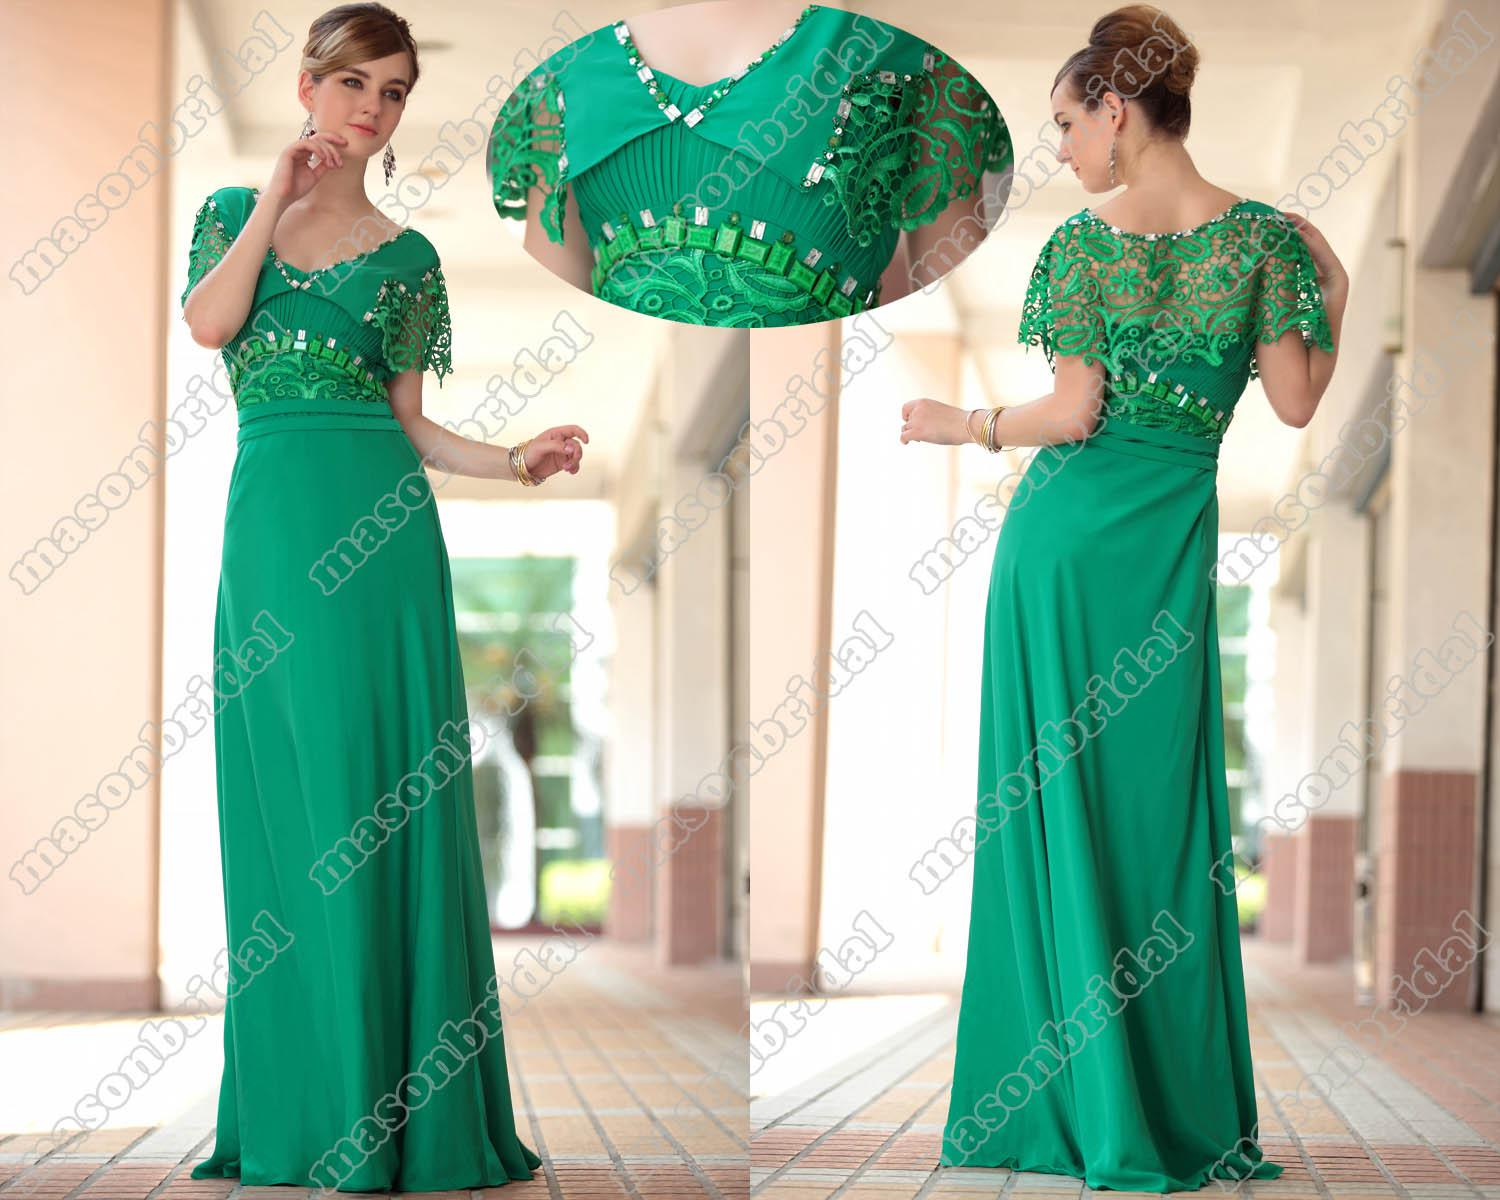 Green Sheath Prom Dress V Neck Short Sleeve Beaded Lace Full Length ...